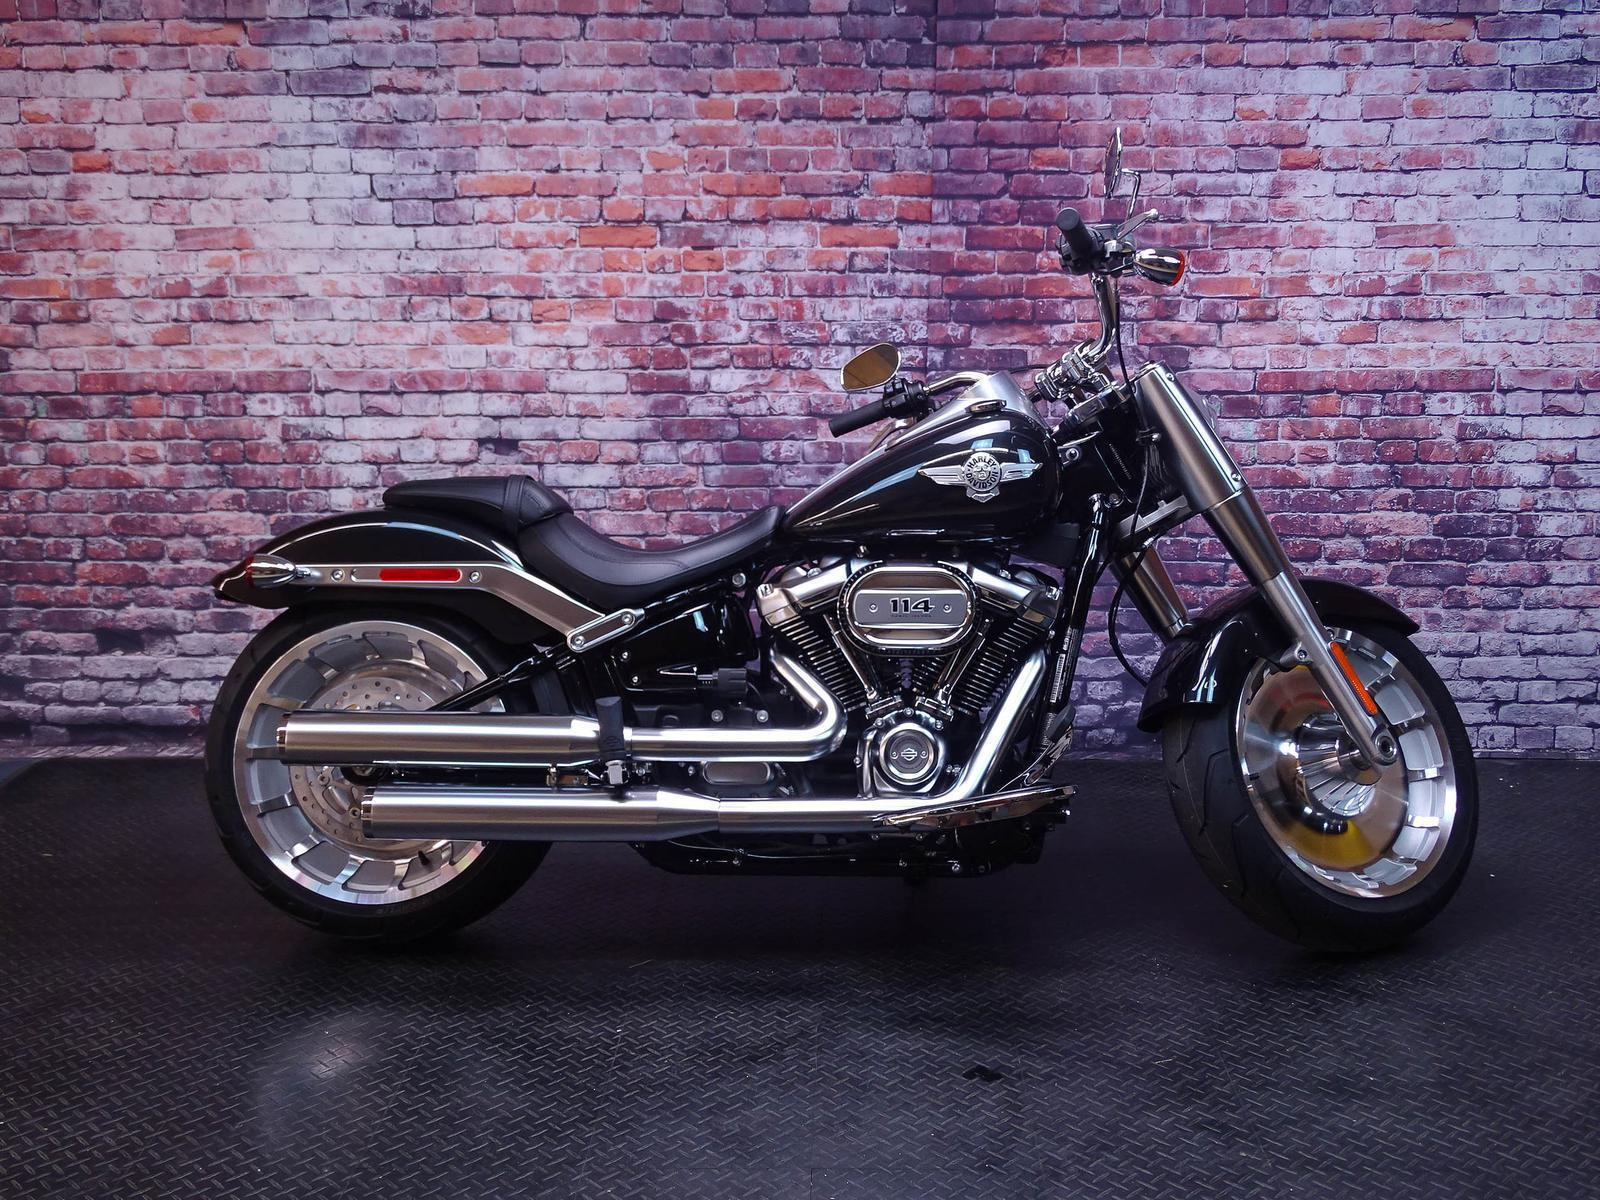 2018 Harley-Davidson® Softail Fat Boy for sale in Manitowoc, WI ...